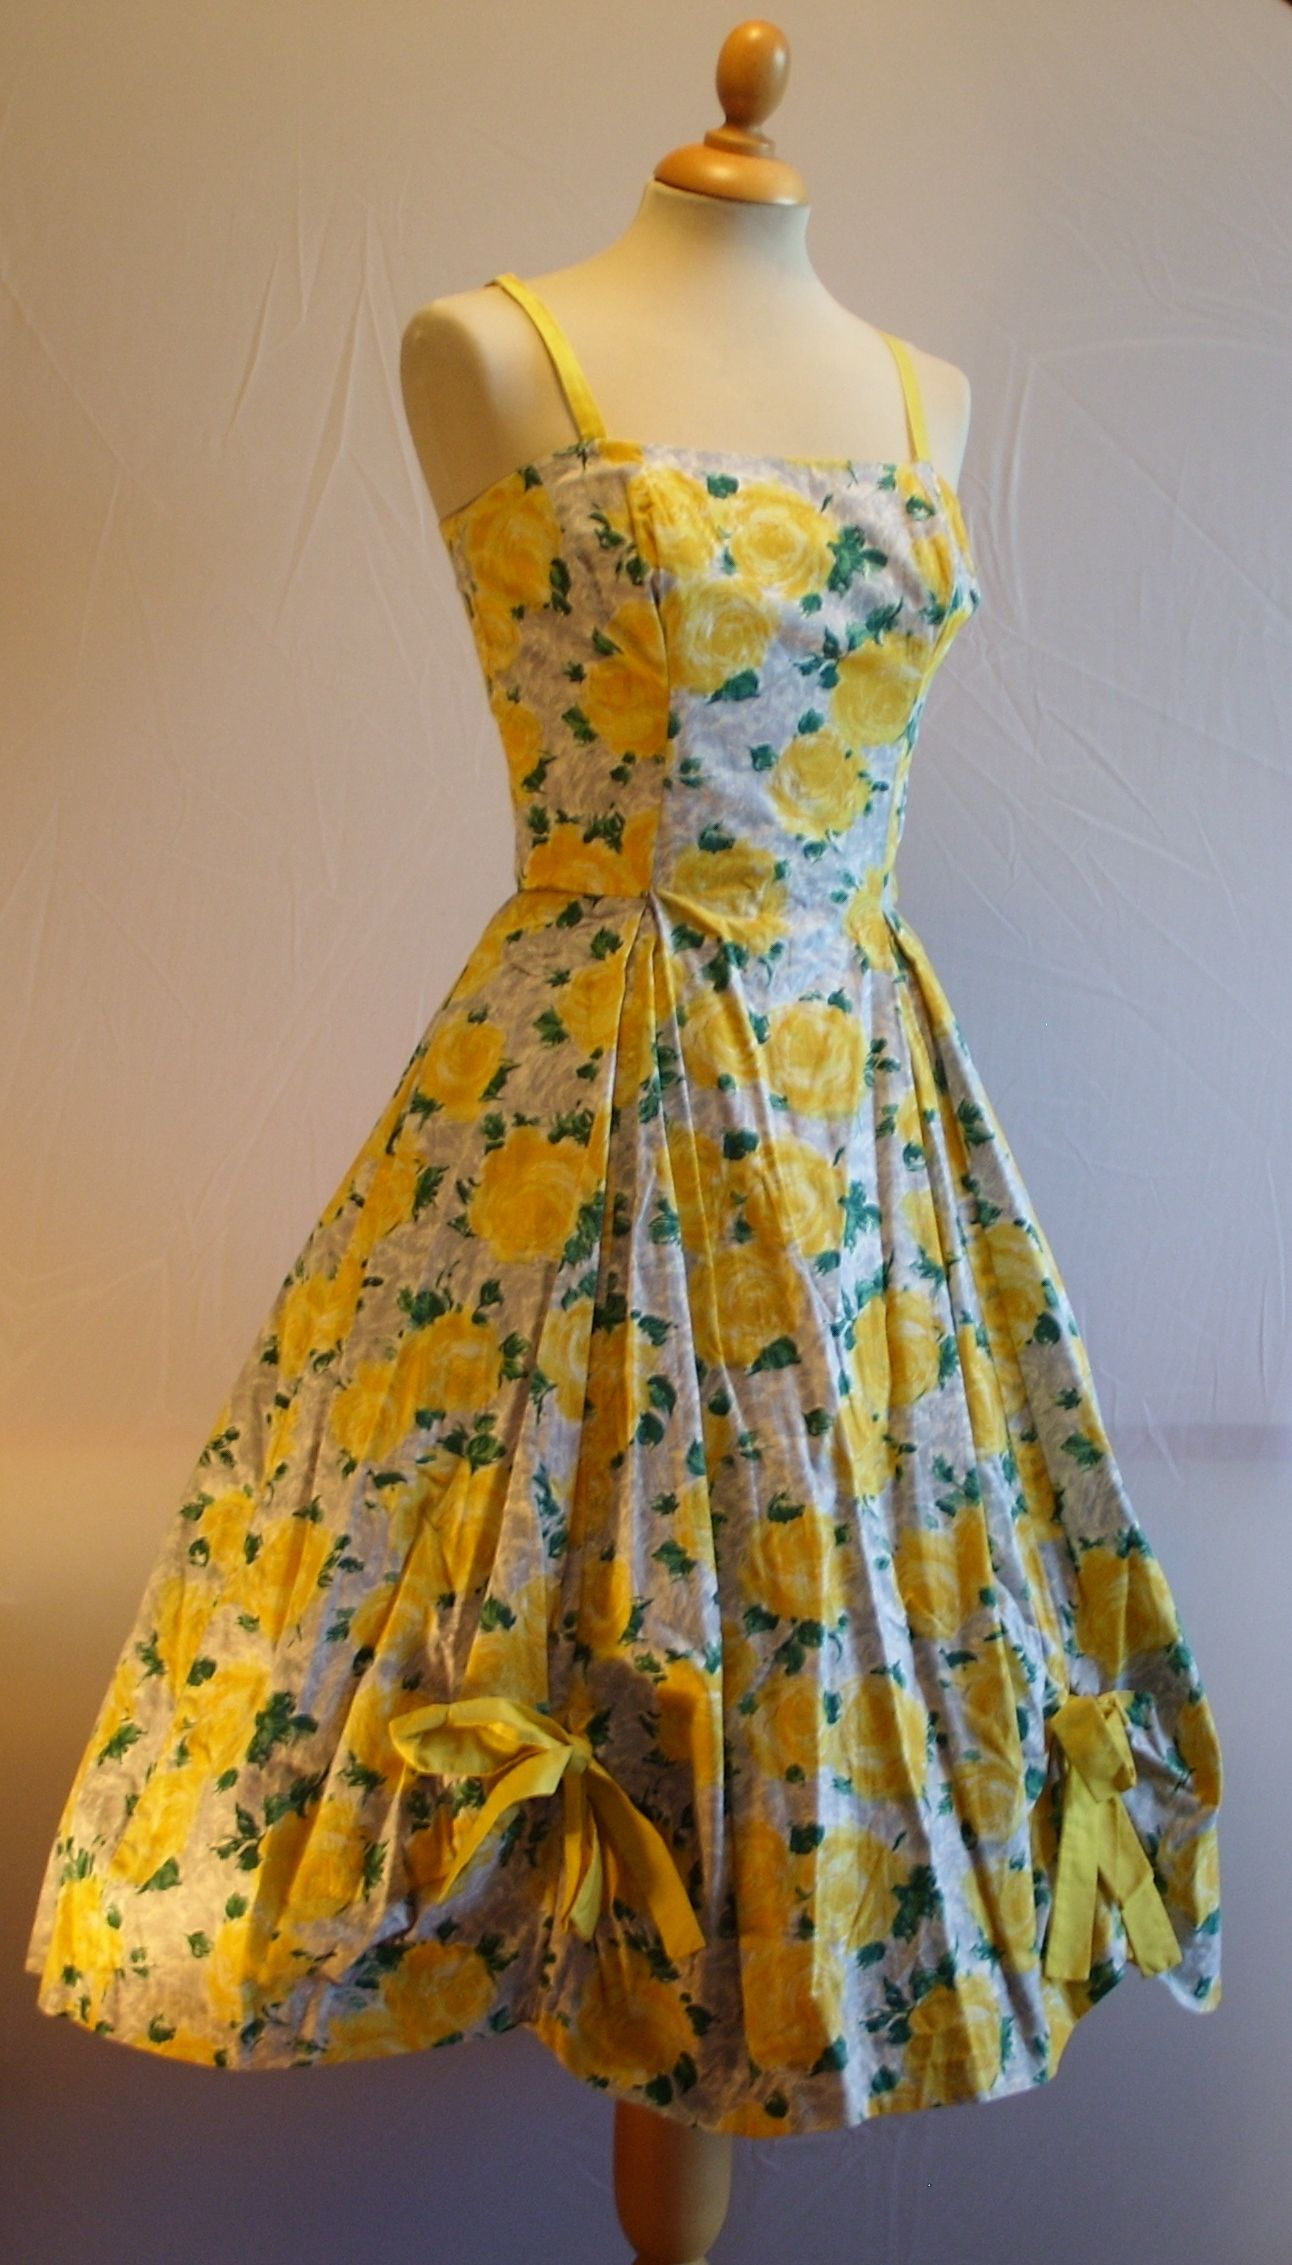 From My Own Horrockses Collection A Beautiful Floral Print Cotton Cocktail Dress My Favouri Vintage Dresses Online Vintage Summer Dresses Vintage Dresses 50s [ 2265 x 1292 Pixel ]